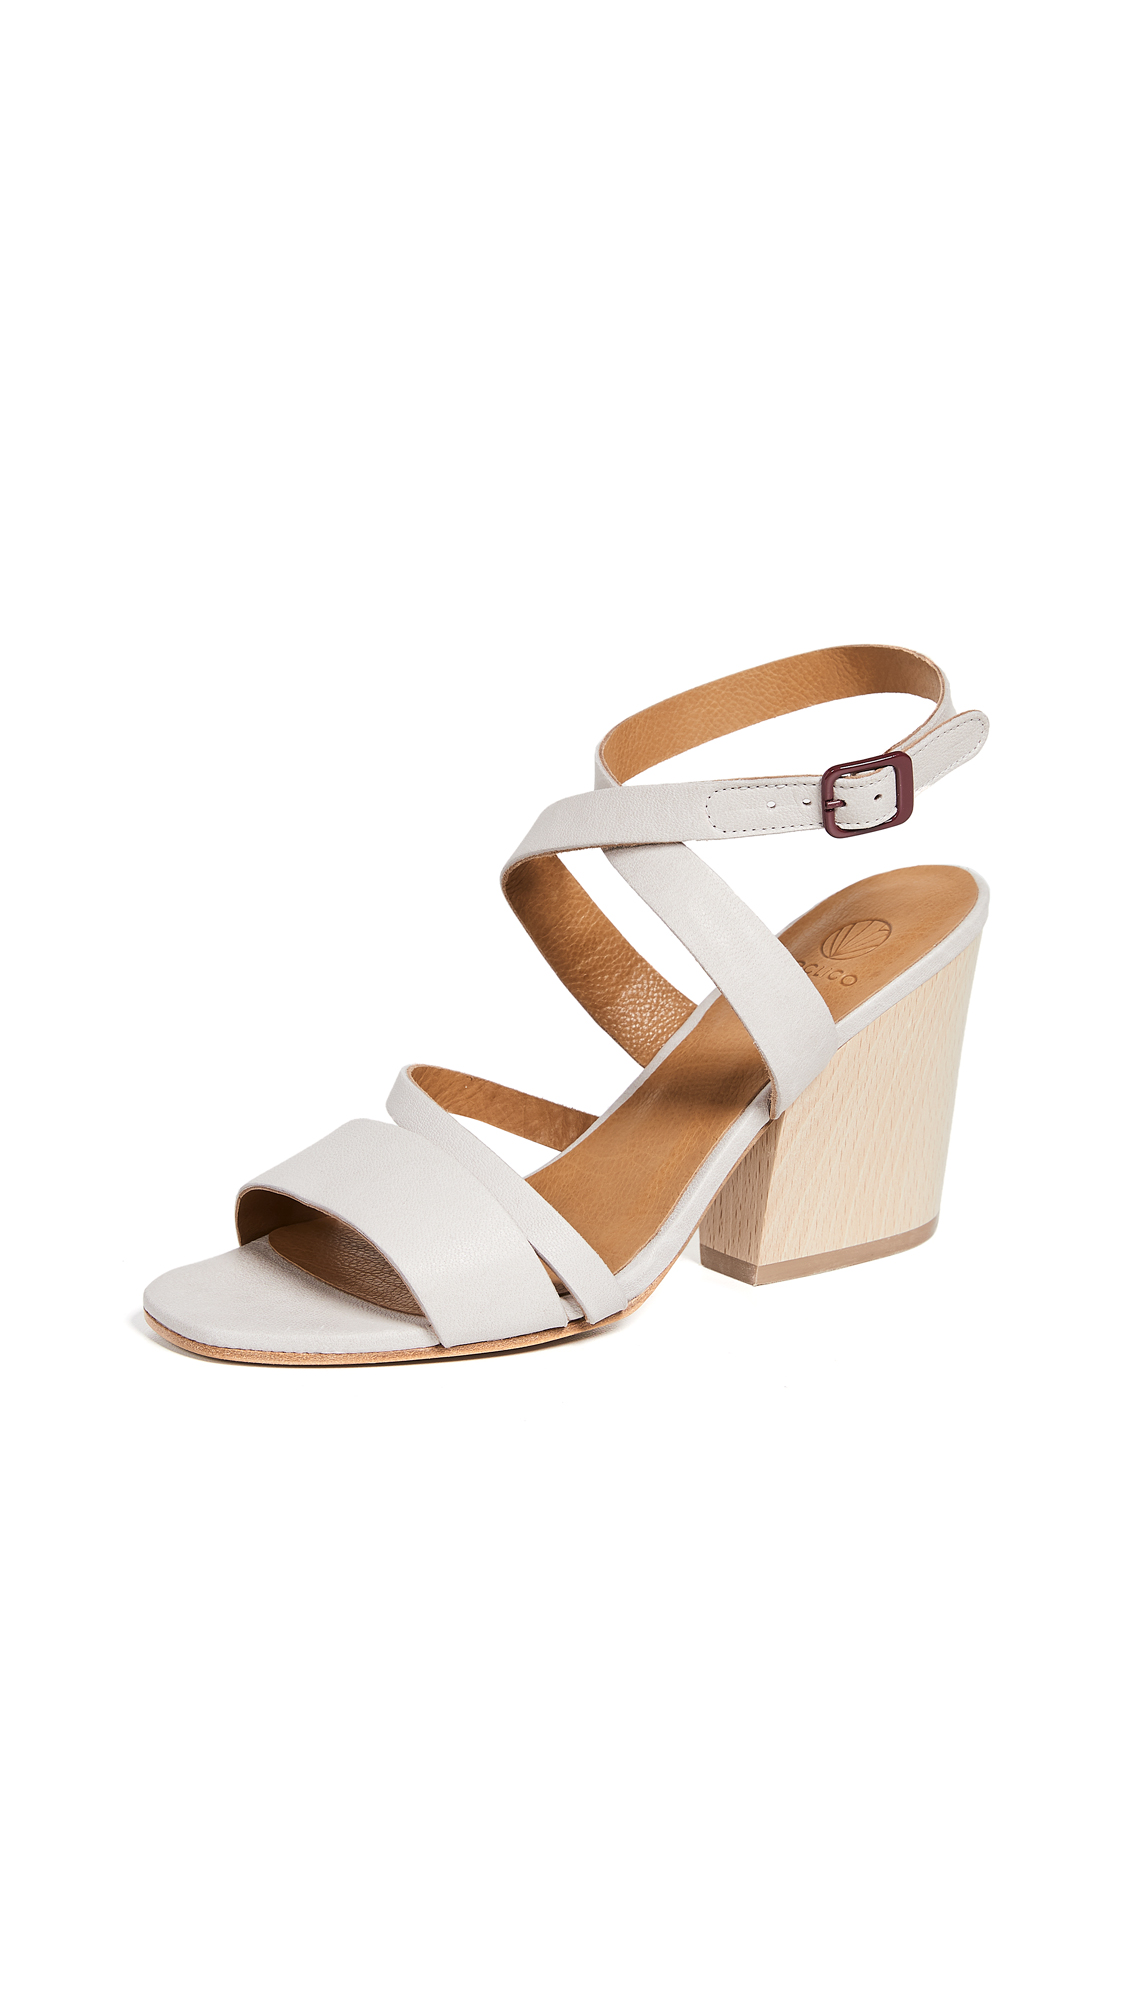 Coclico Shoes Taurasi Strappy Sandals - Rock Perla